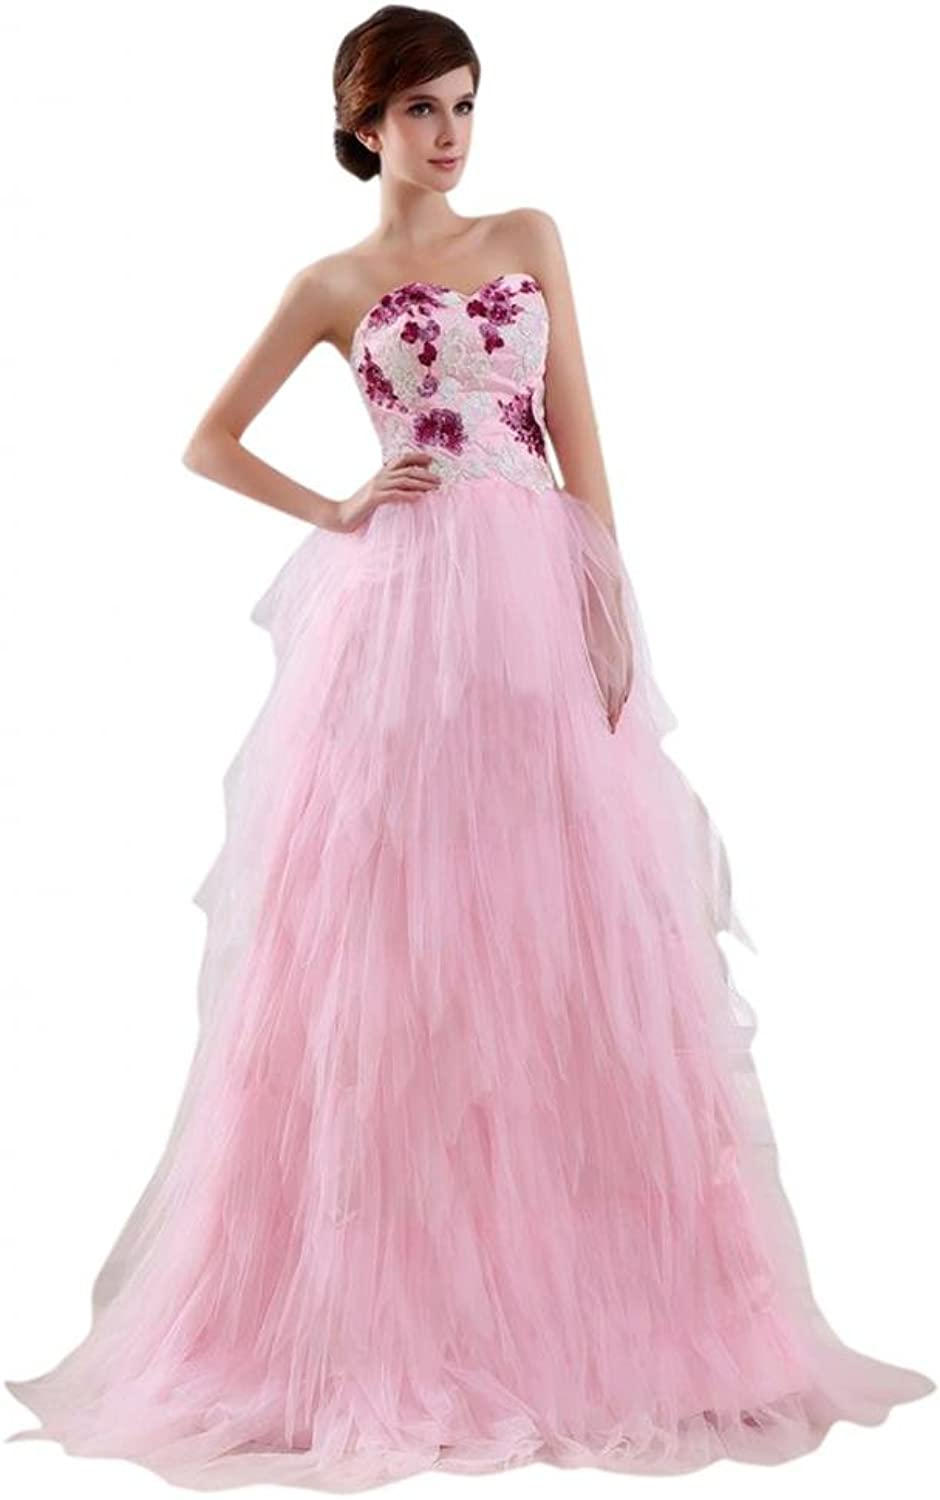 Scarlett Women's Beaded Aline Tulle Party Prom Evening Cocktail Dress Pink